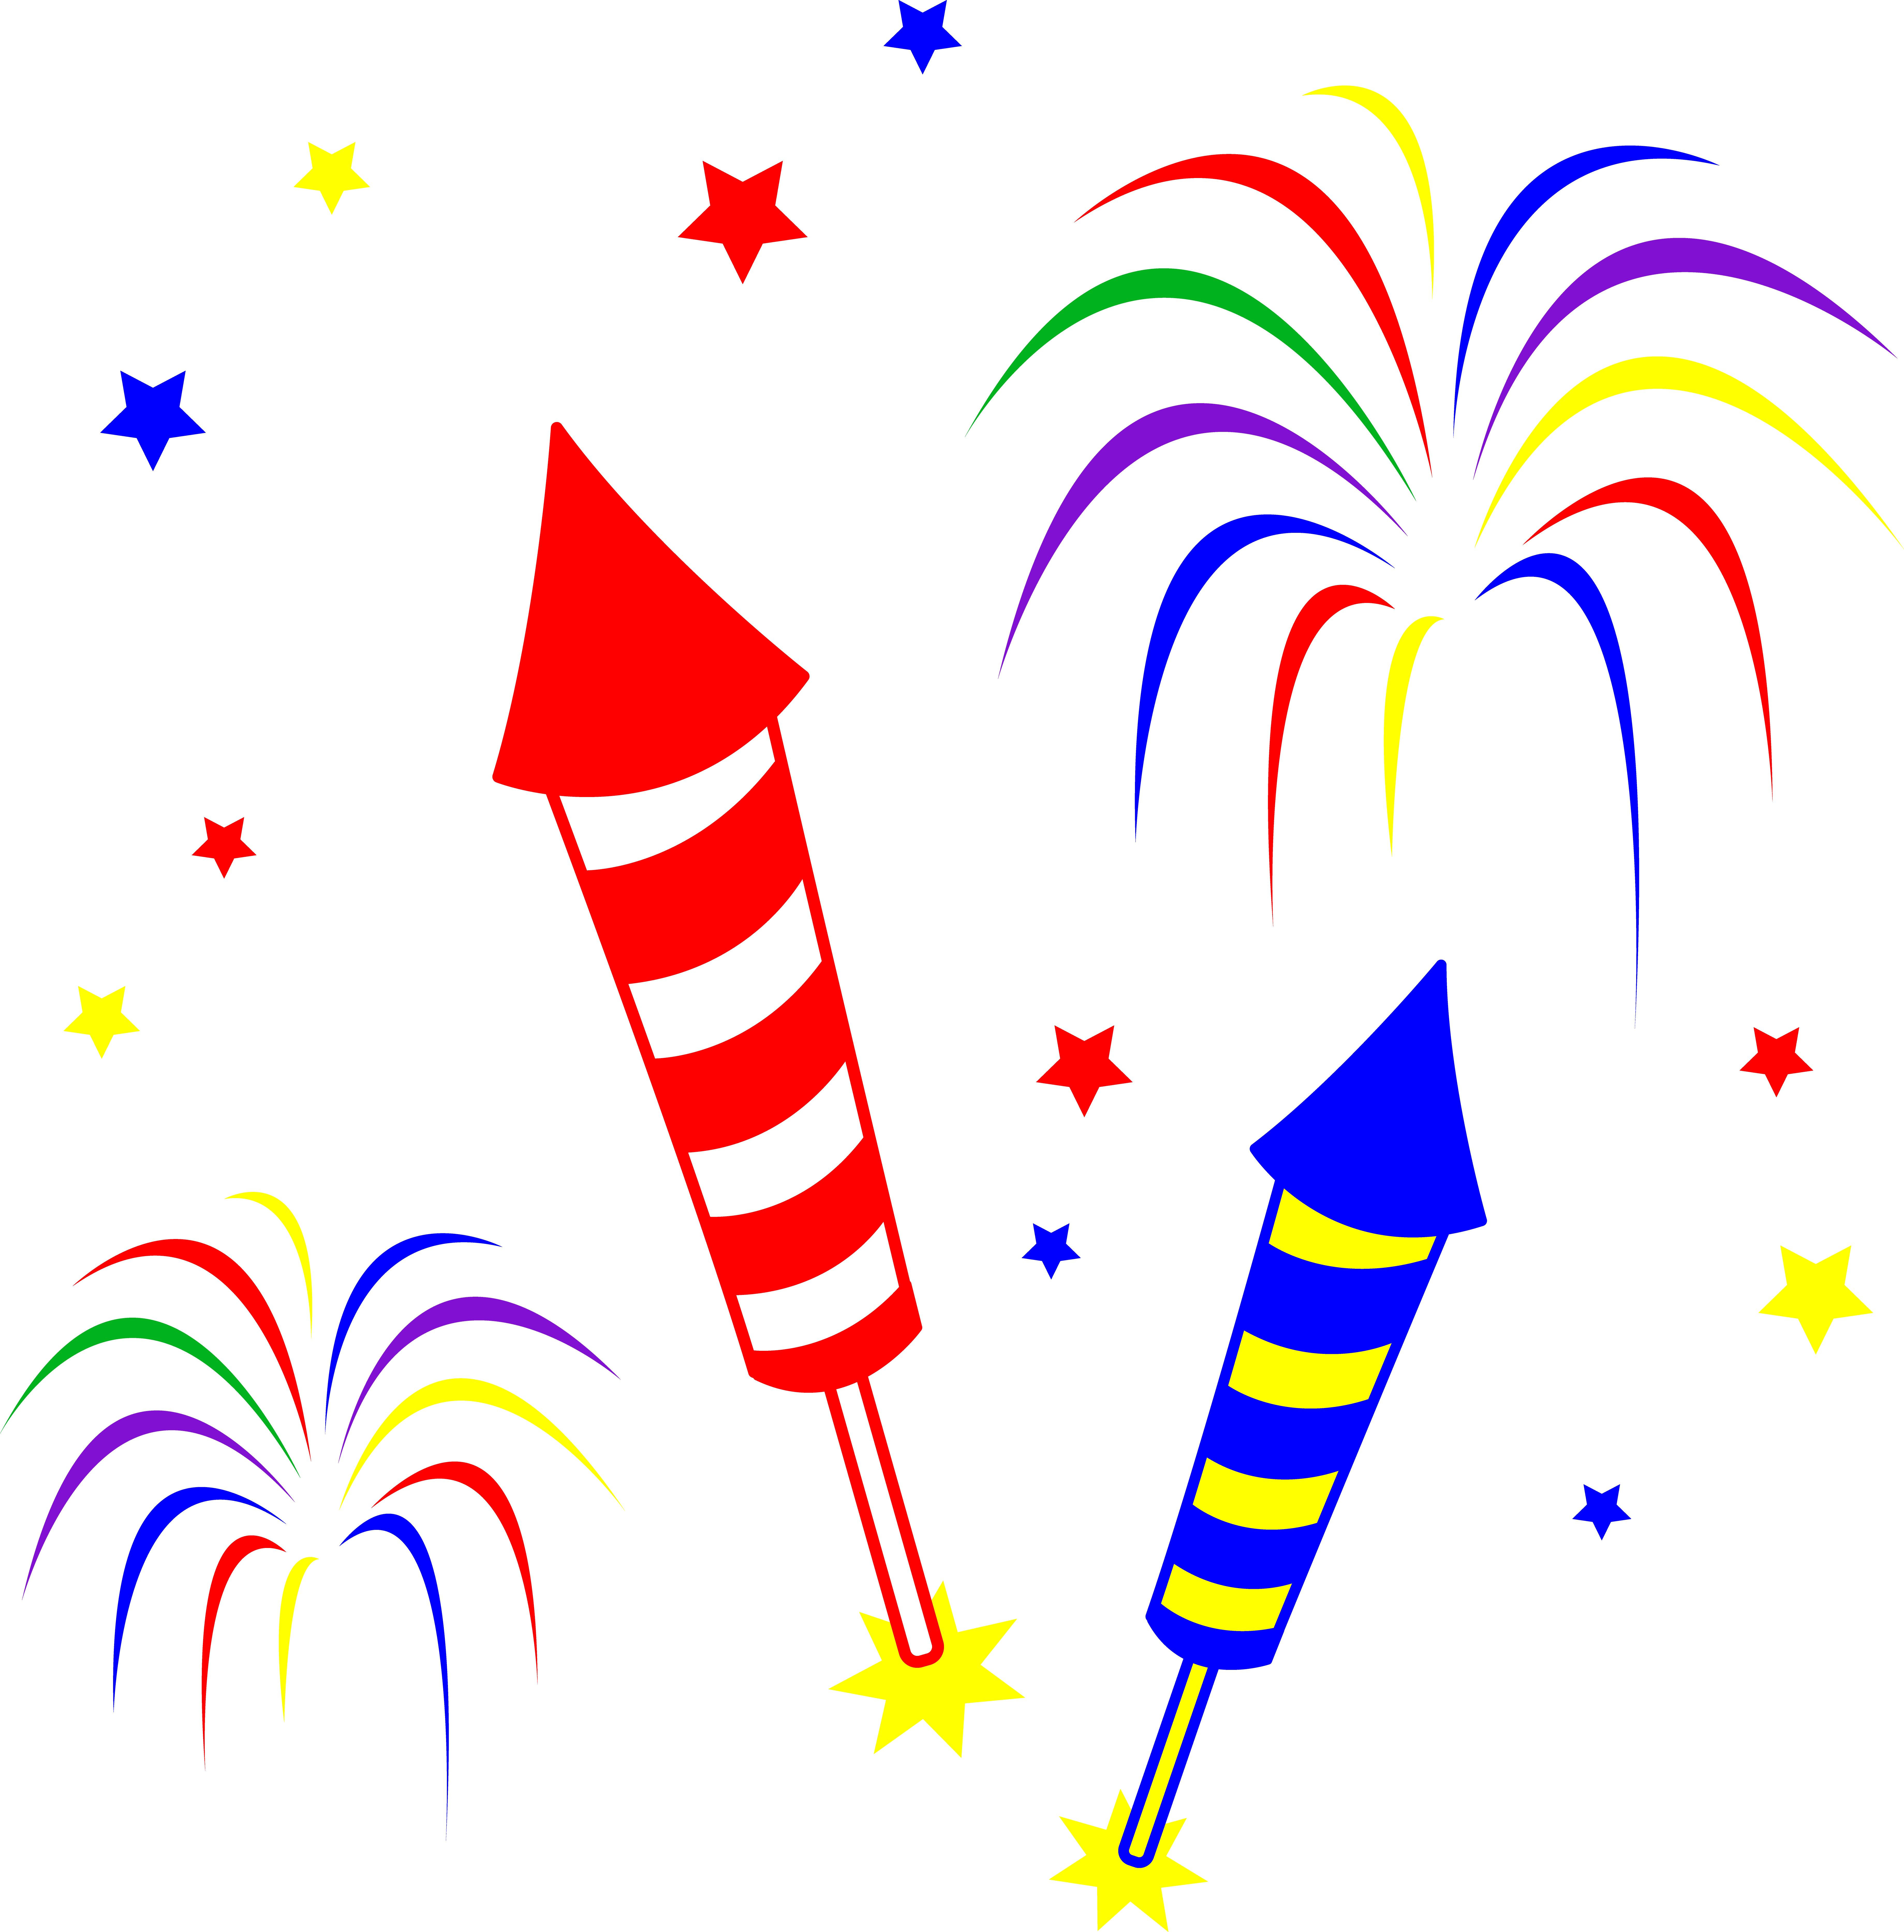 4th of july fireworks clip art cliparts co clip art fourth of july disney clip art fourth of july stars